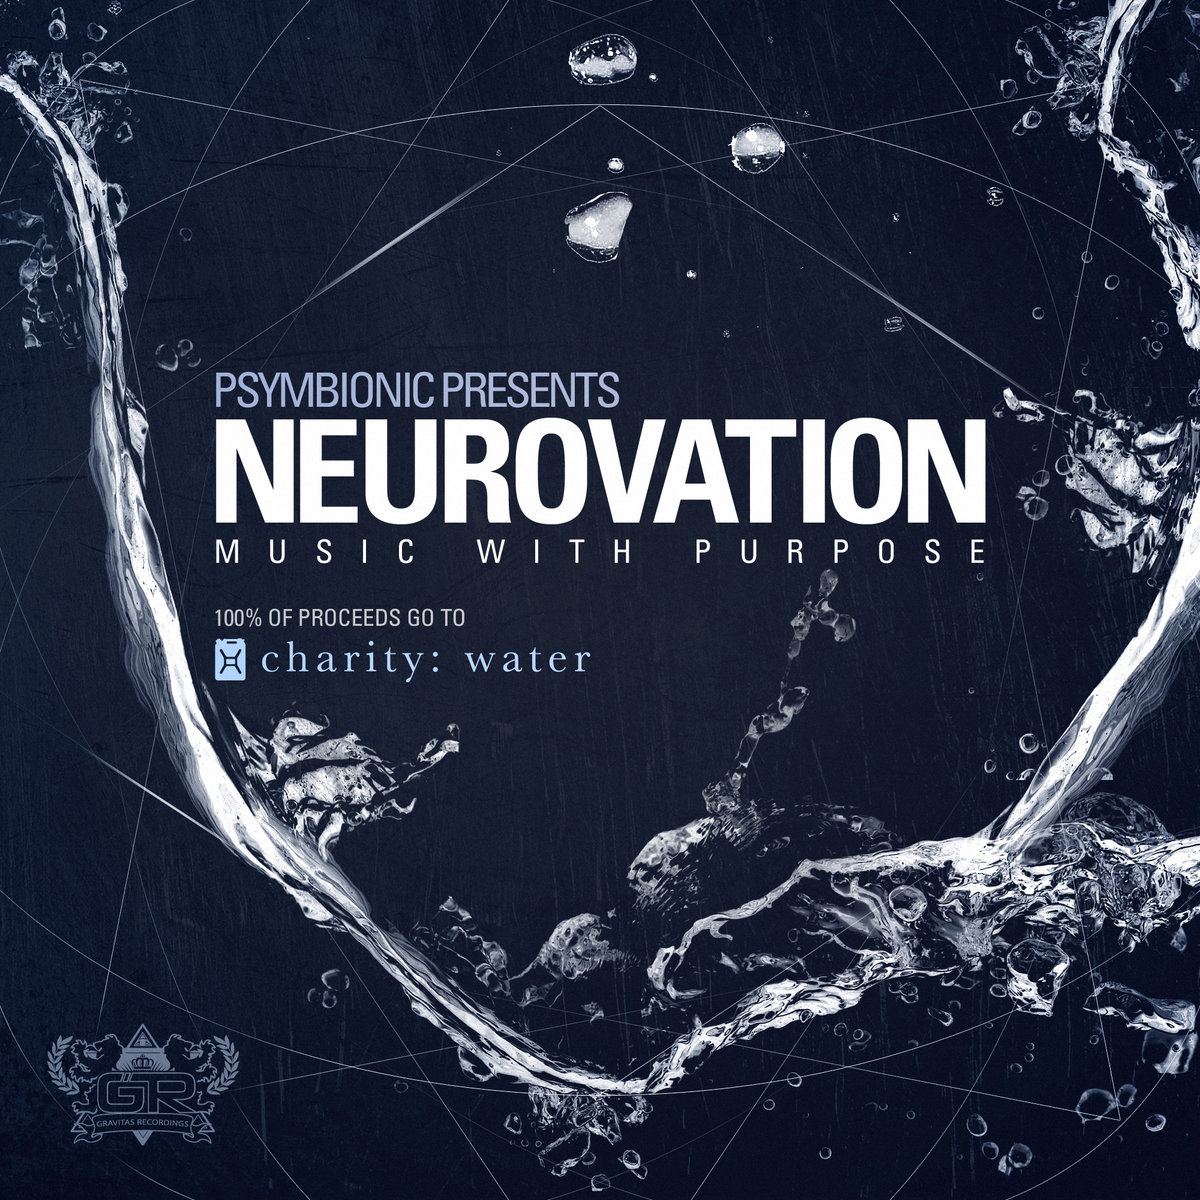 Russ Liquid - Doce Tristeza @ 'Psymbionic Presents: Neurovation' album (cryptex, glitch hop)